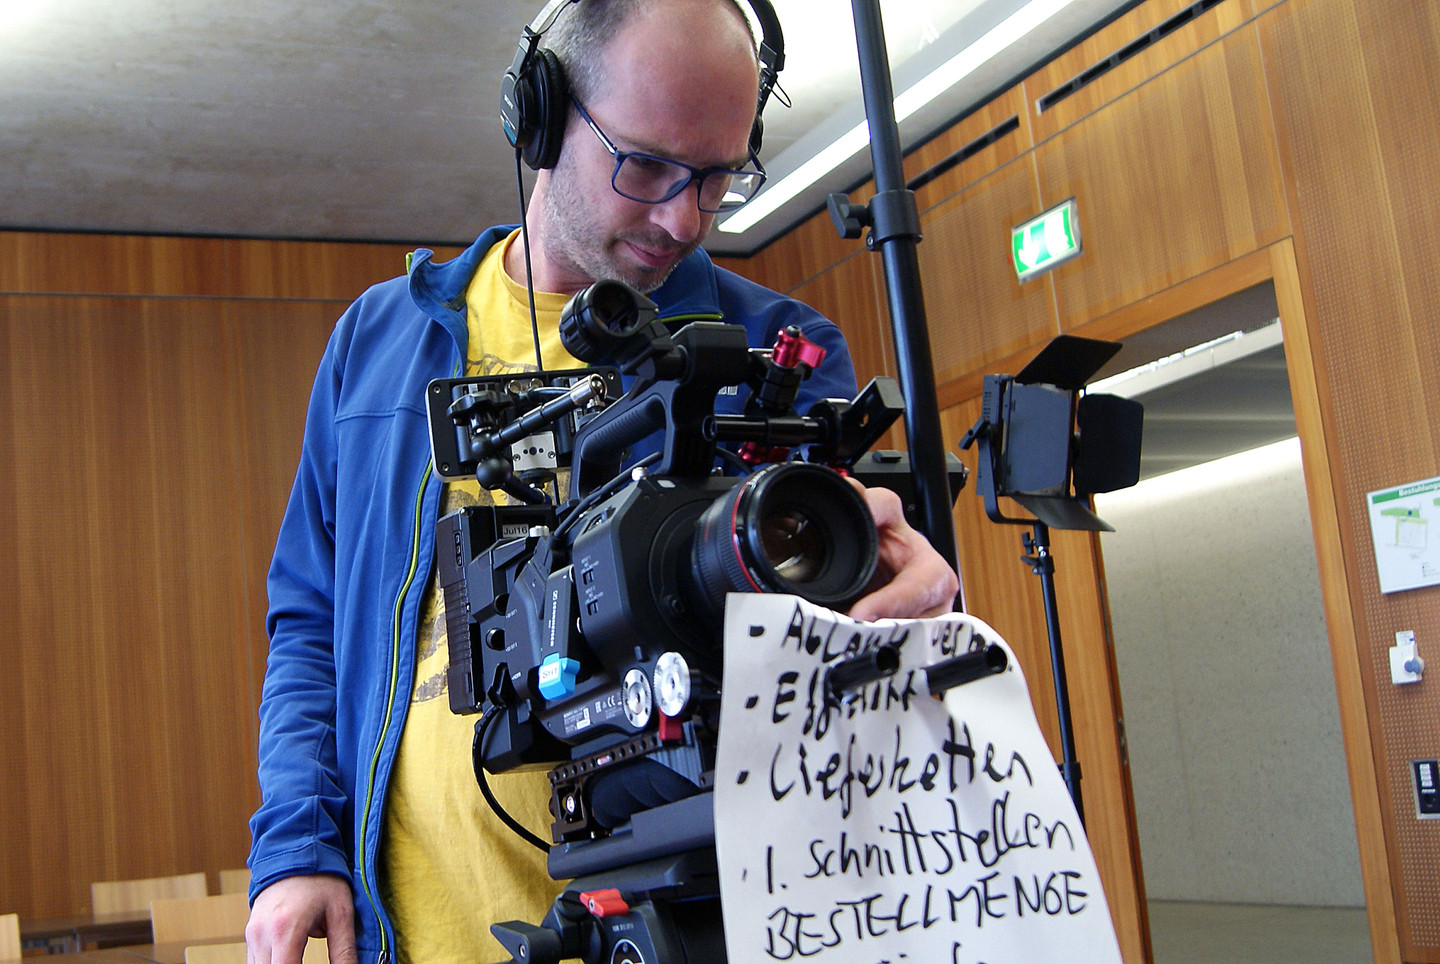 A cameraman in action: filming an online lecture